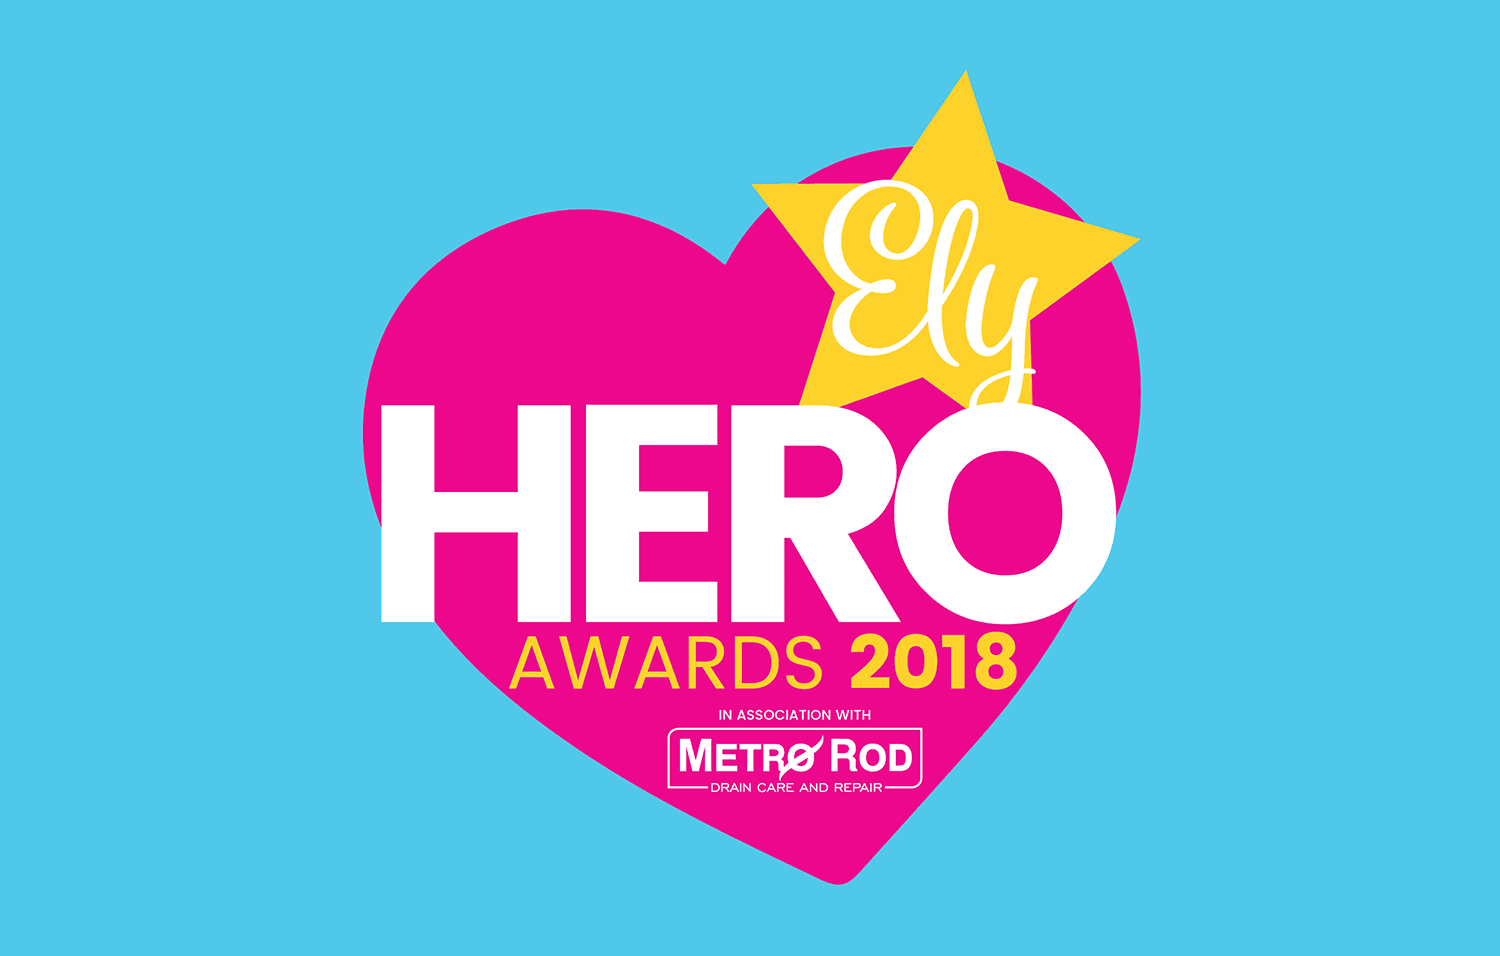 Ely Hero Awards 2018